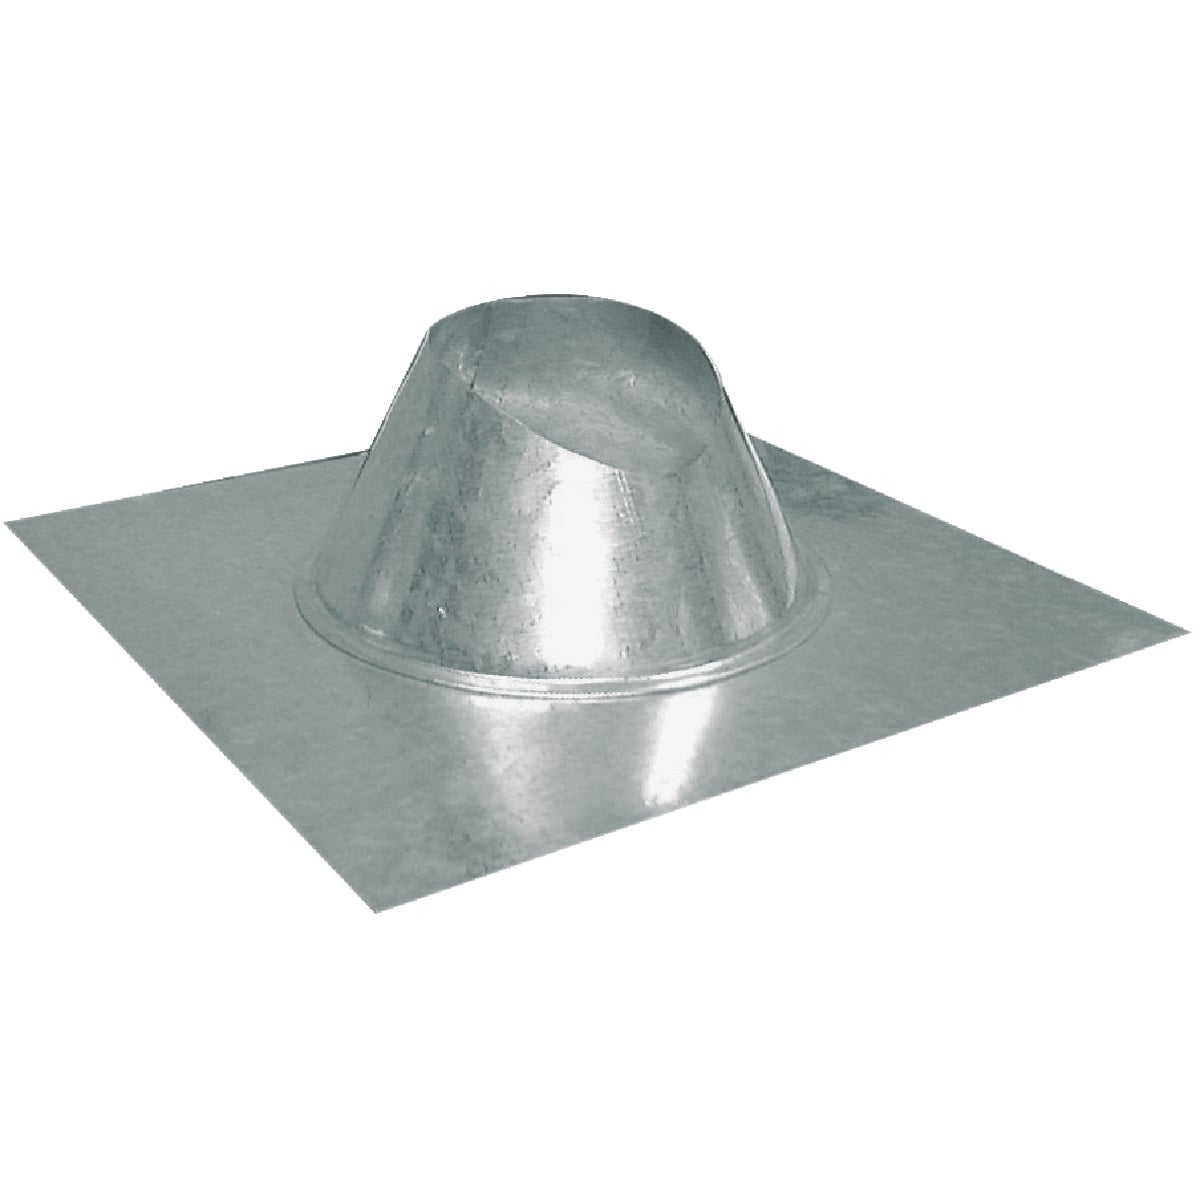 "6"" GALV ROOF FLASHING - GV1385 by Imperial Mfg Group"